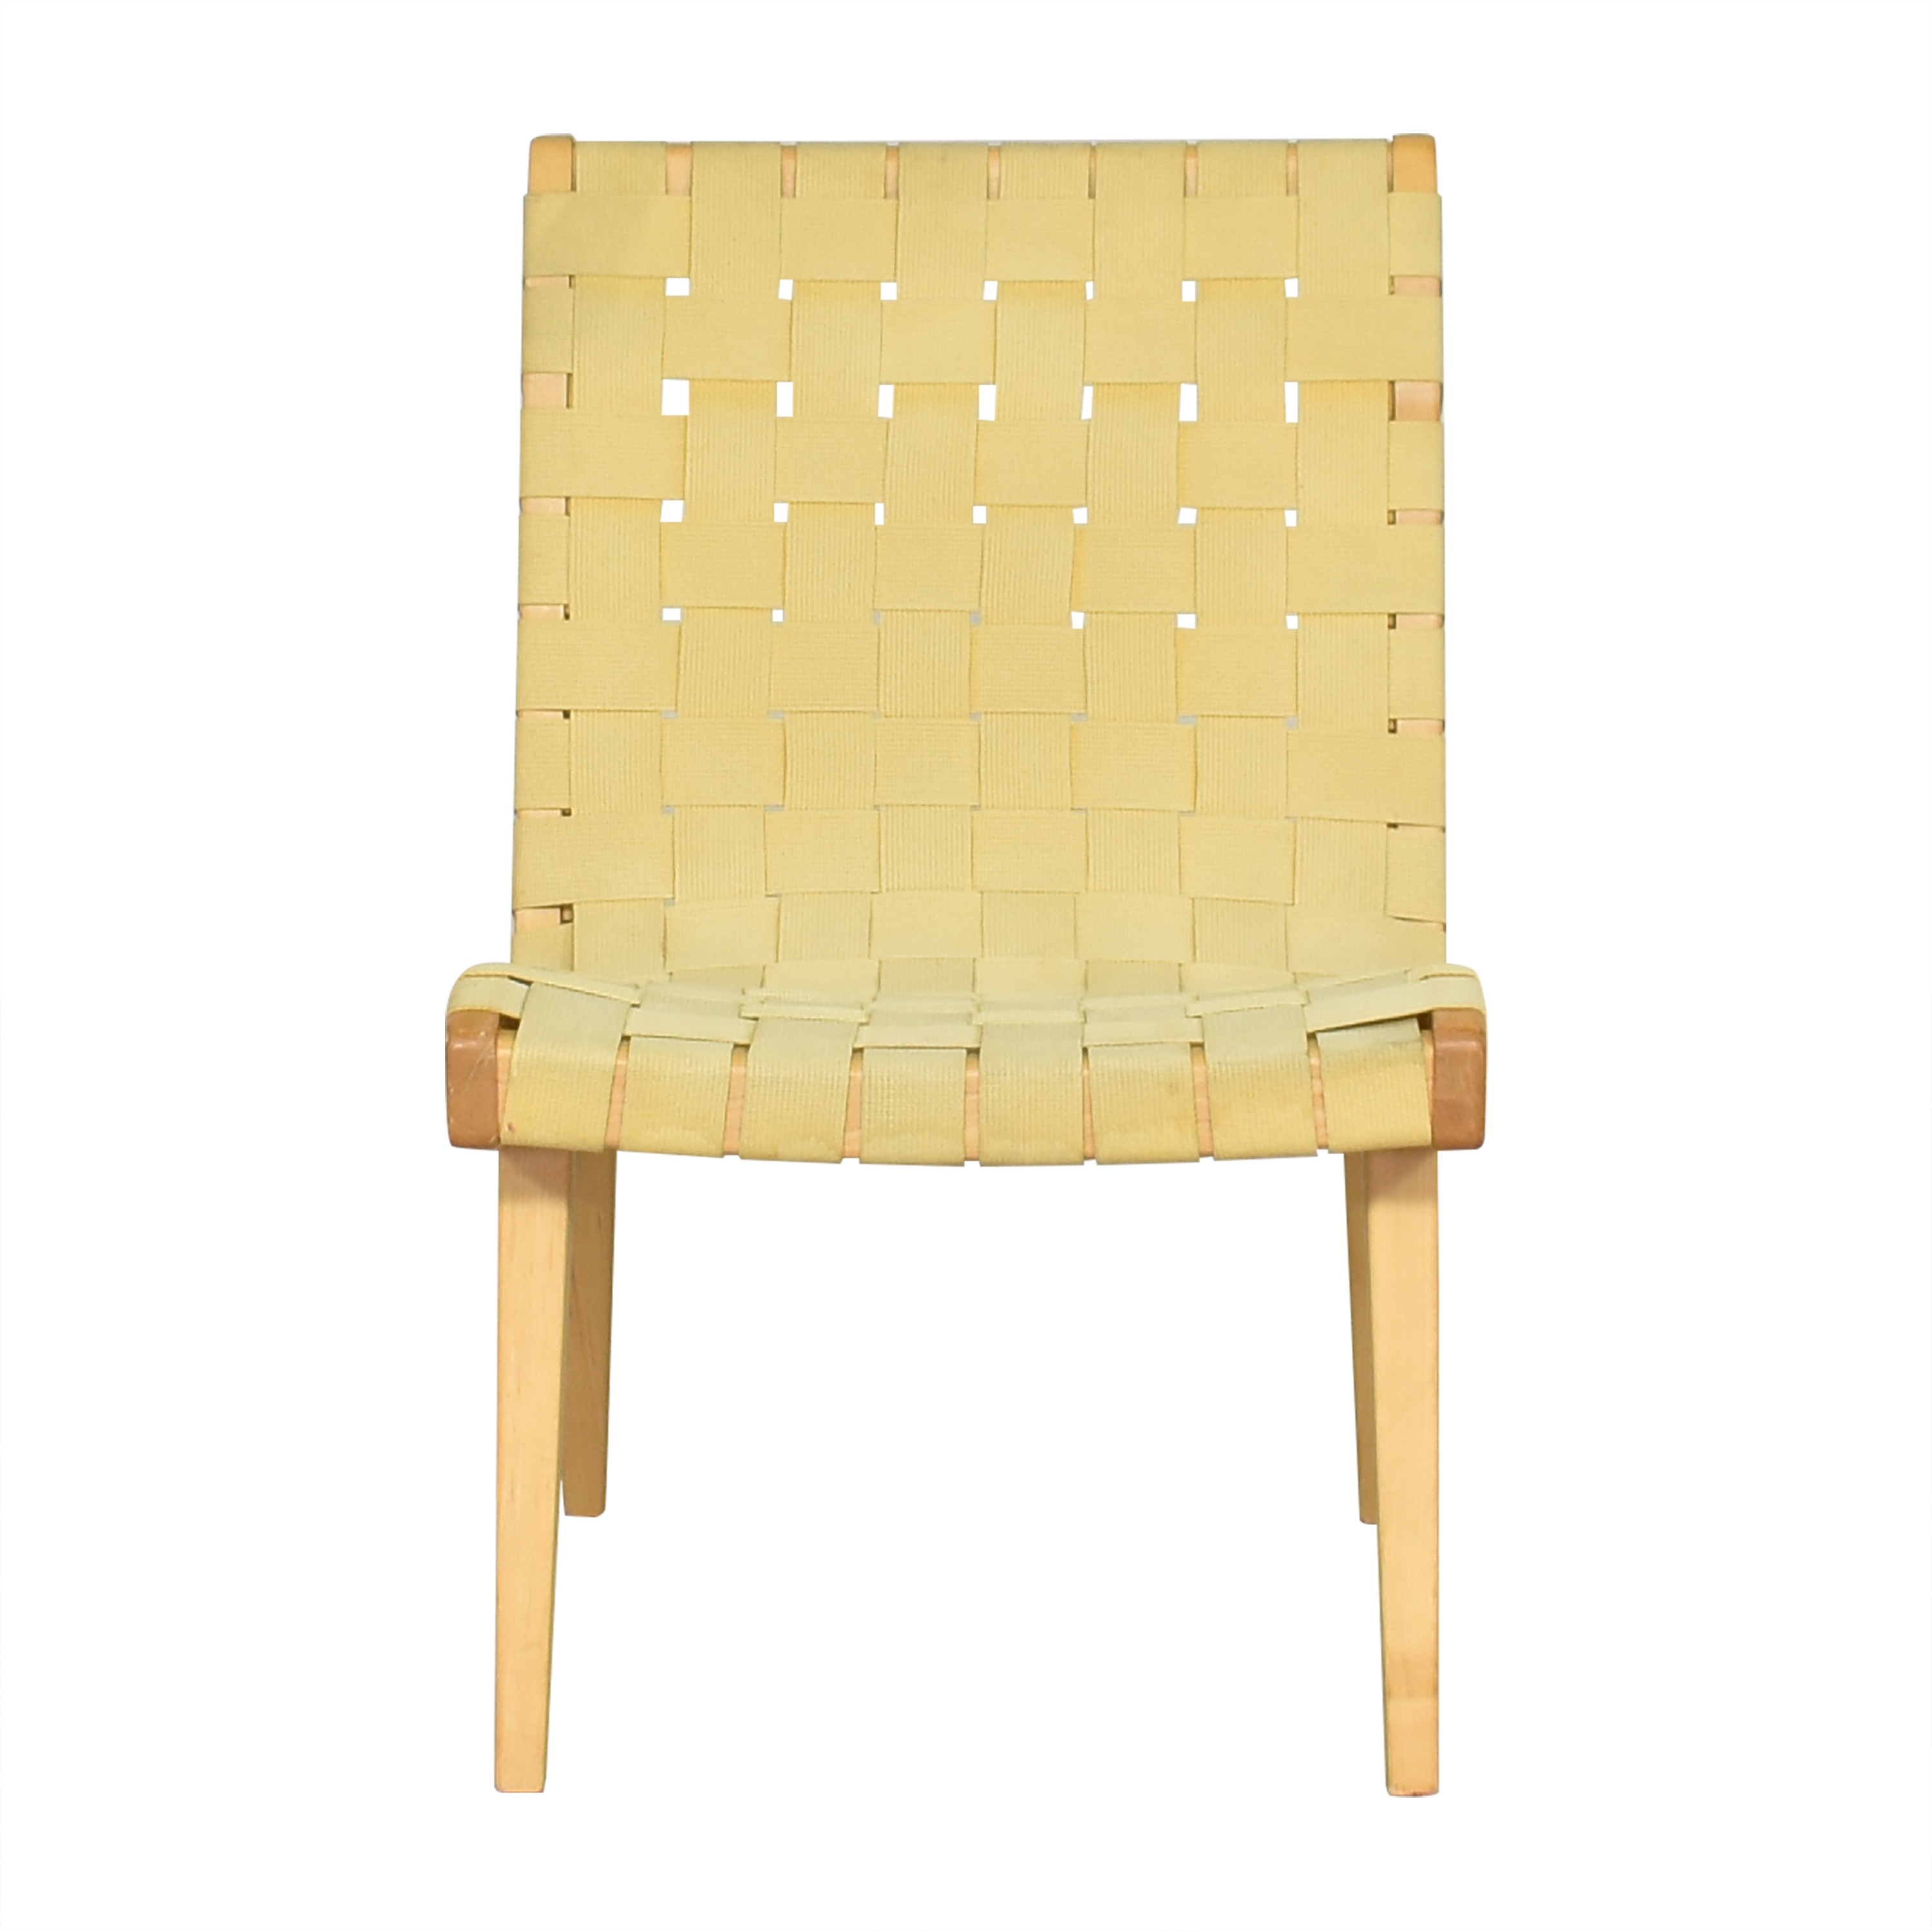 Knoll Design Within Reach Knoll Risom Lounge Chair used